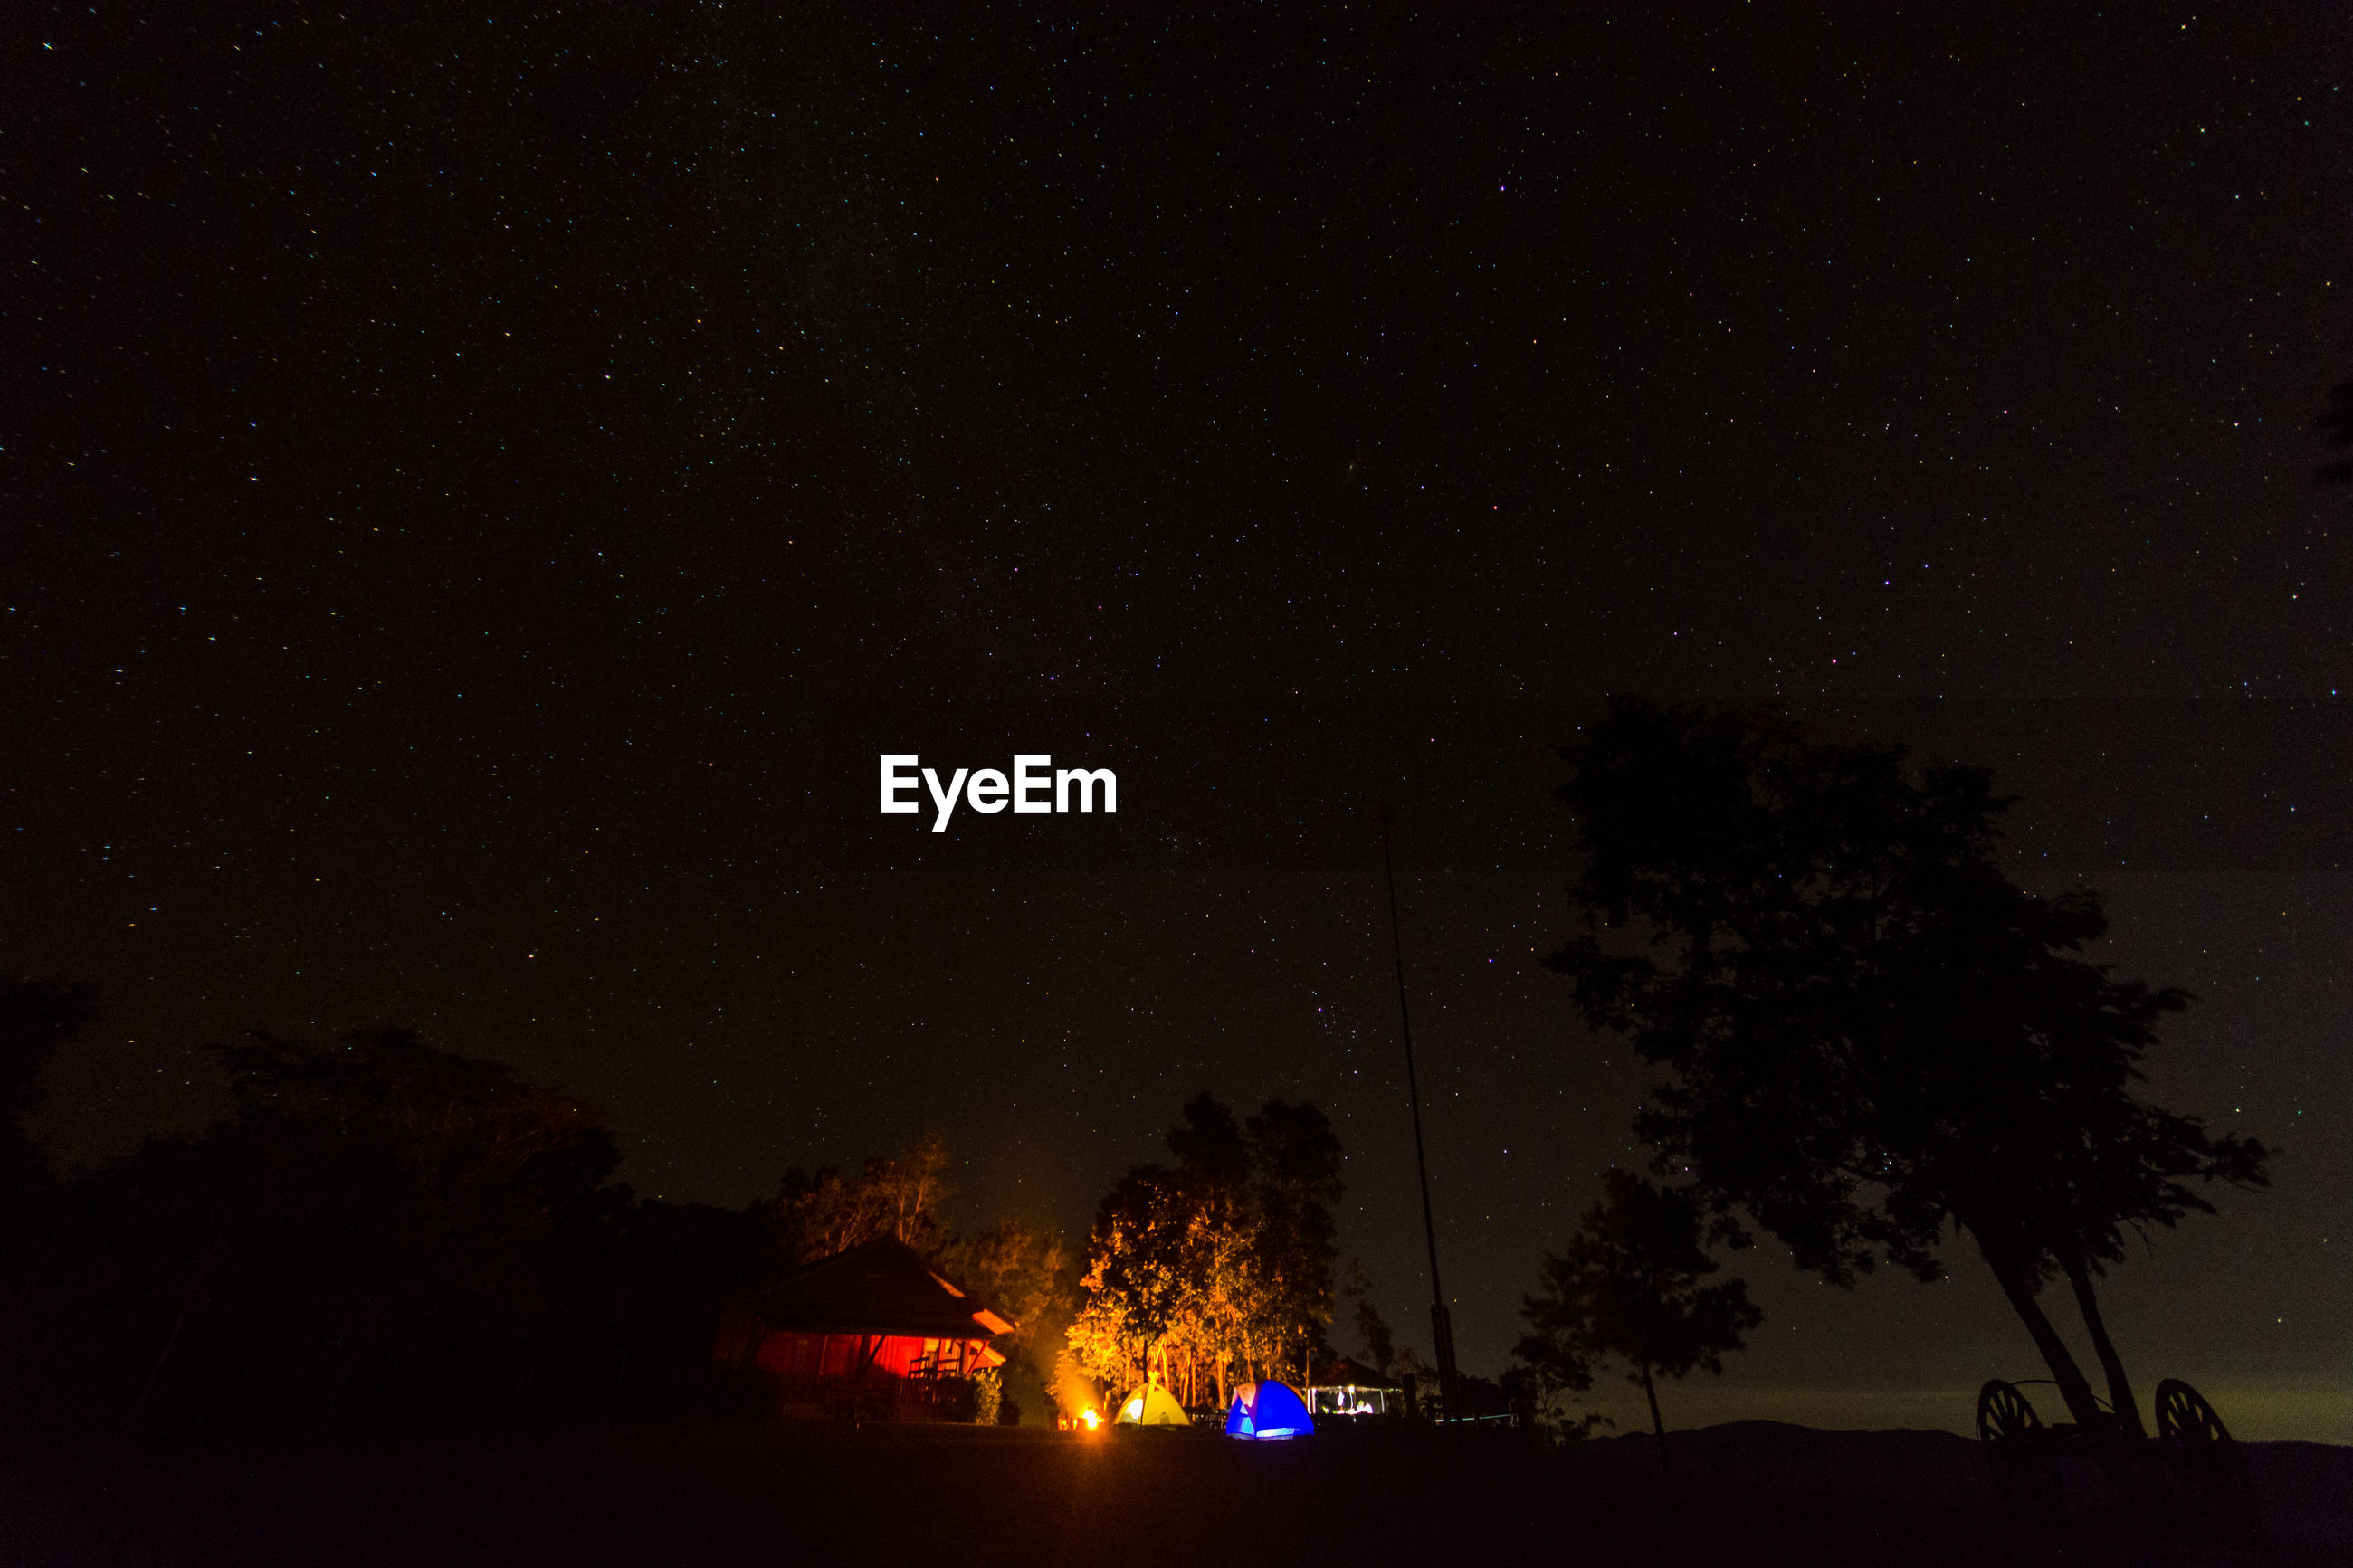 SILHOUETTE TREES AGAINST ILLUMINATED STAR FIELD AT NIGHT